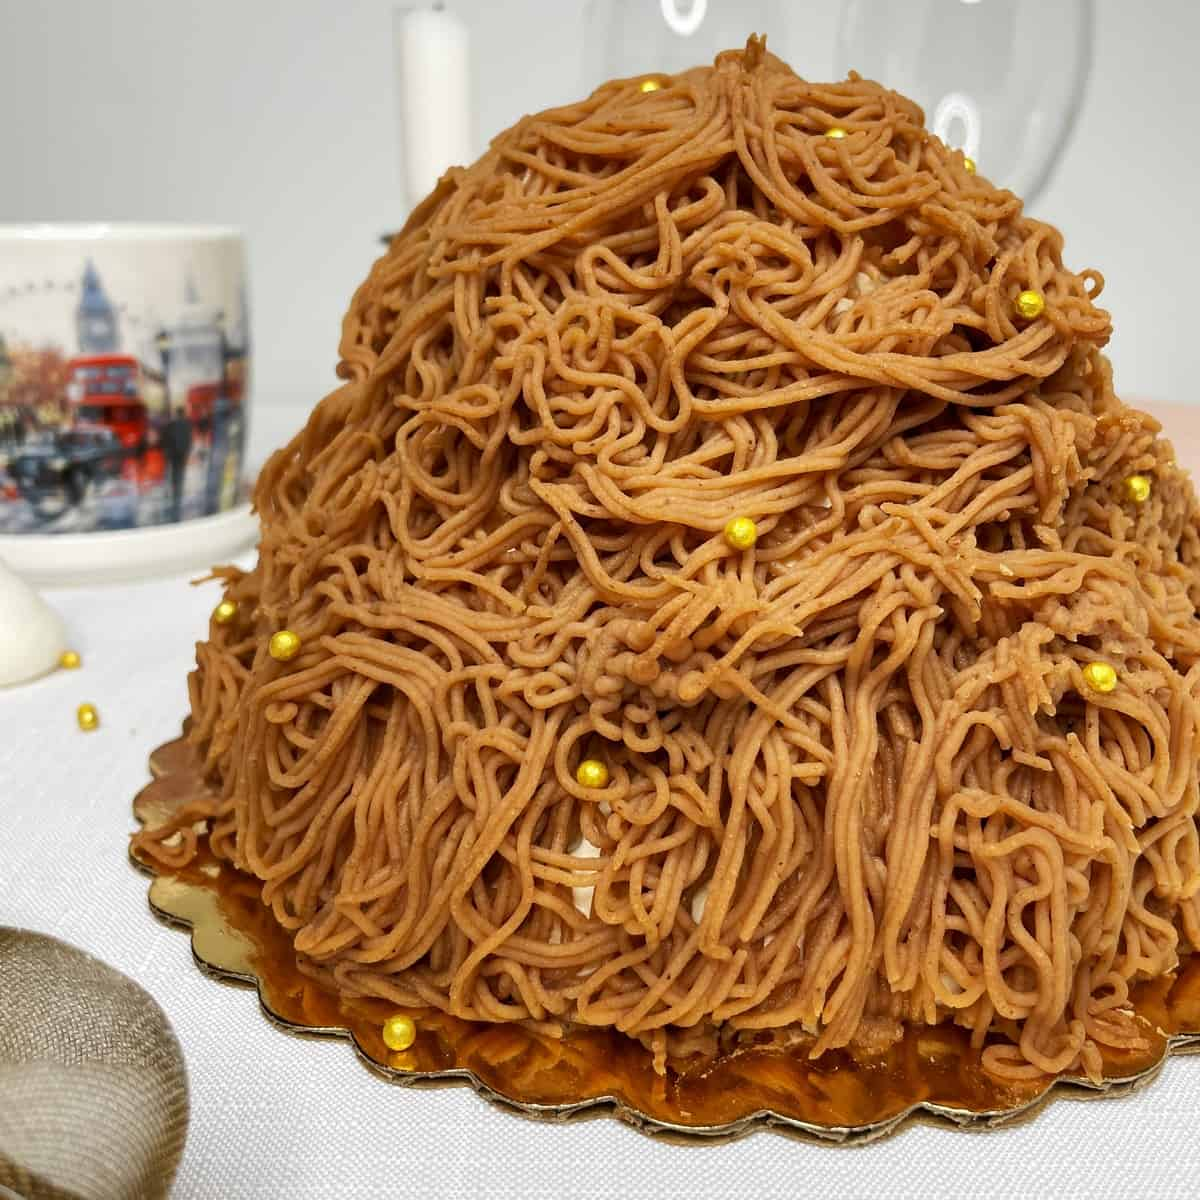 Mont Blanc cake covered with chestnut vermicelli with a cup, a candle, glasses on a table